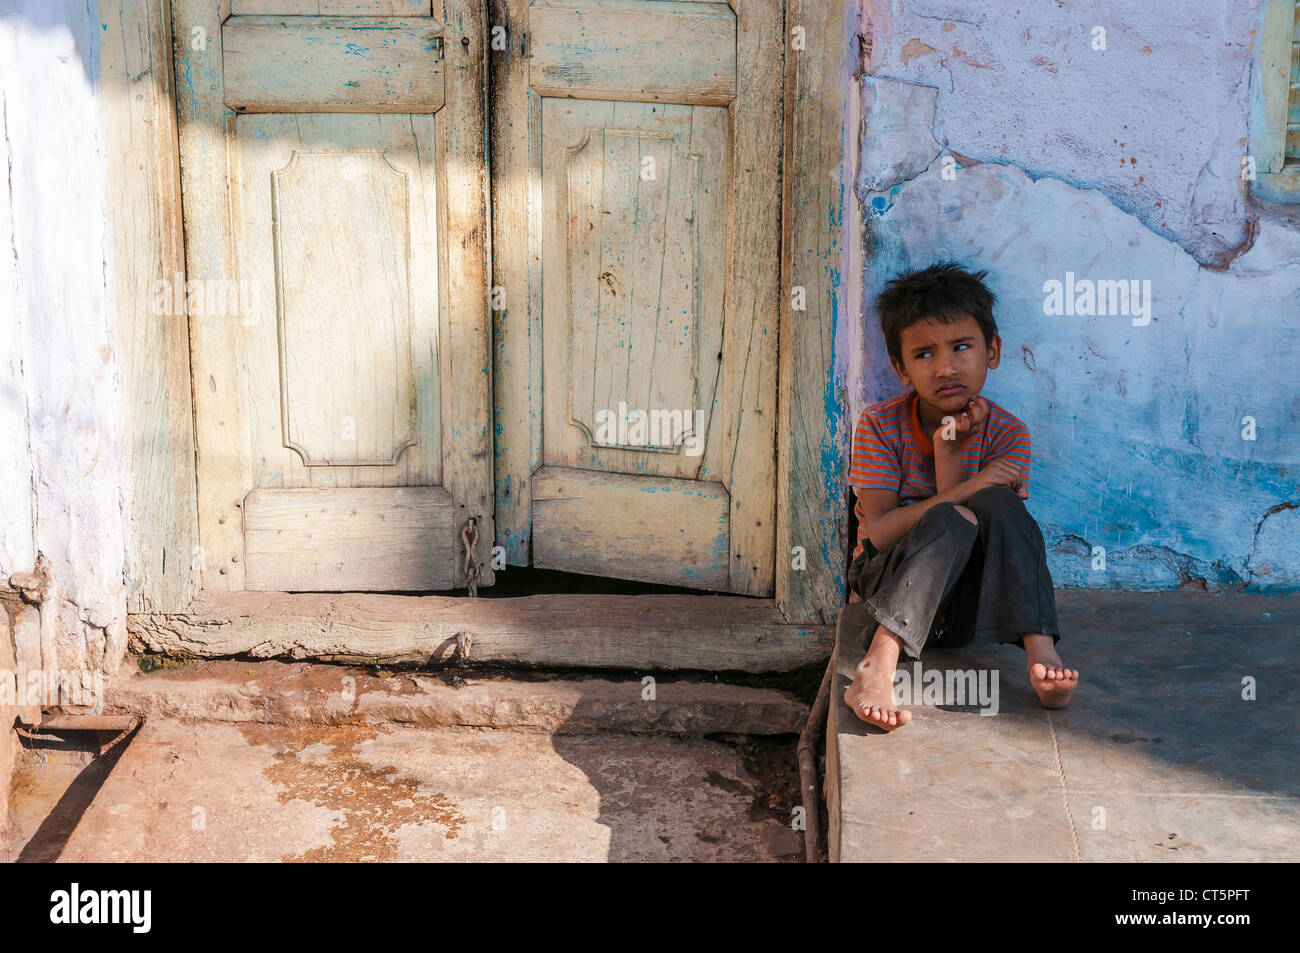 Poor boy sitting in front of a doorway, Pushkar, Rajasthan, India - Stock Image